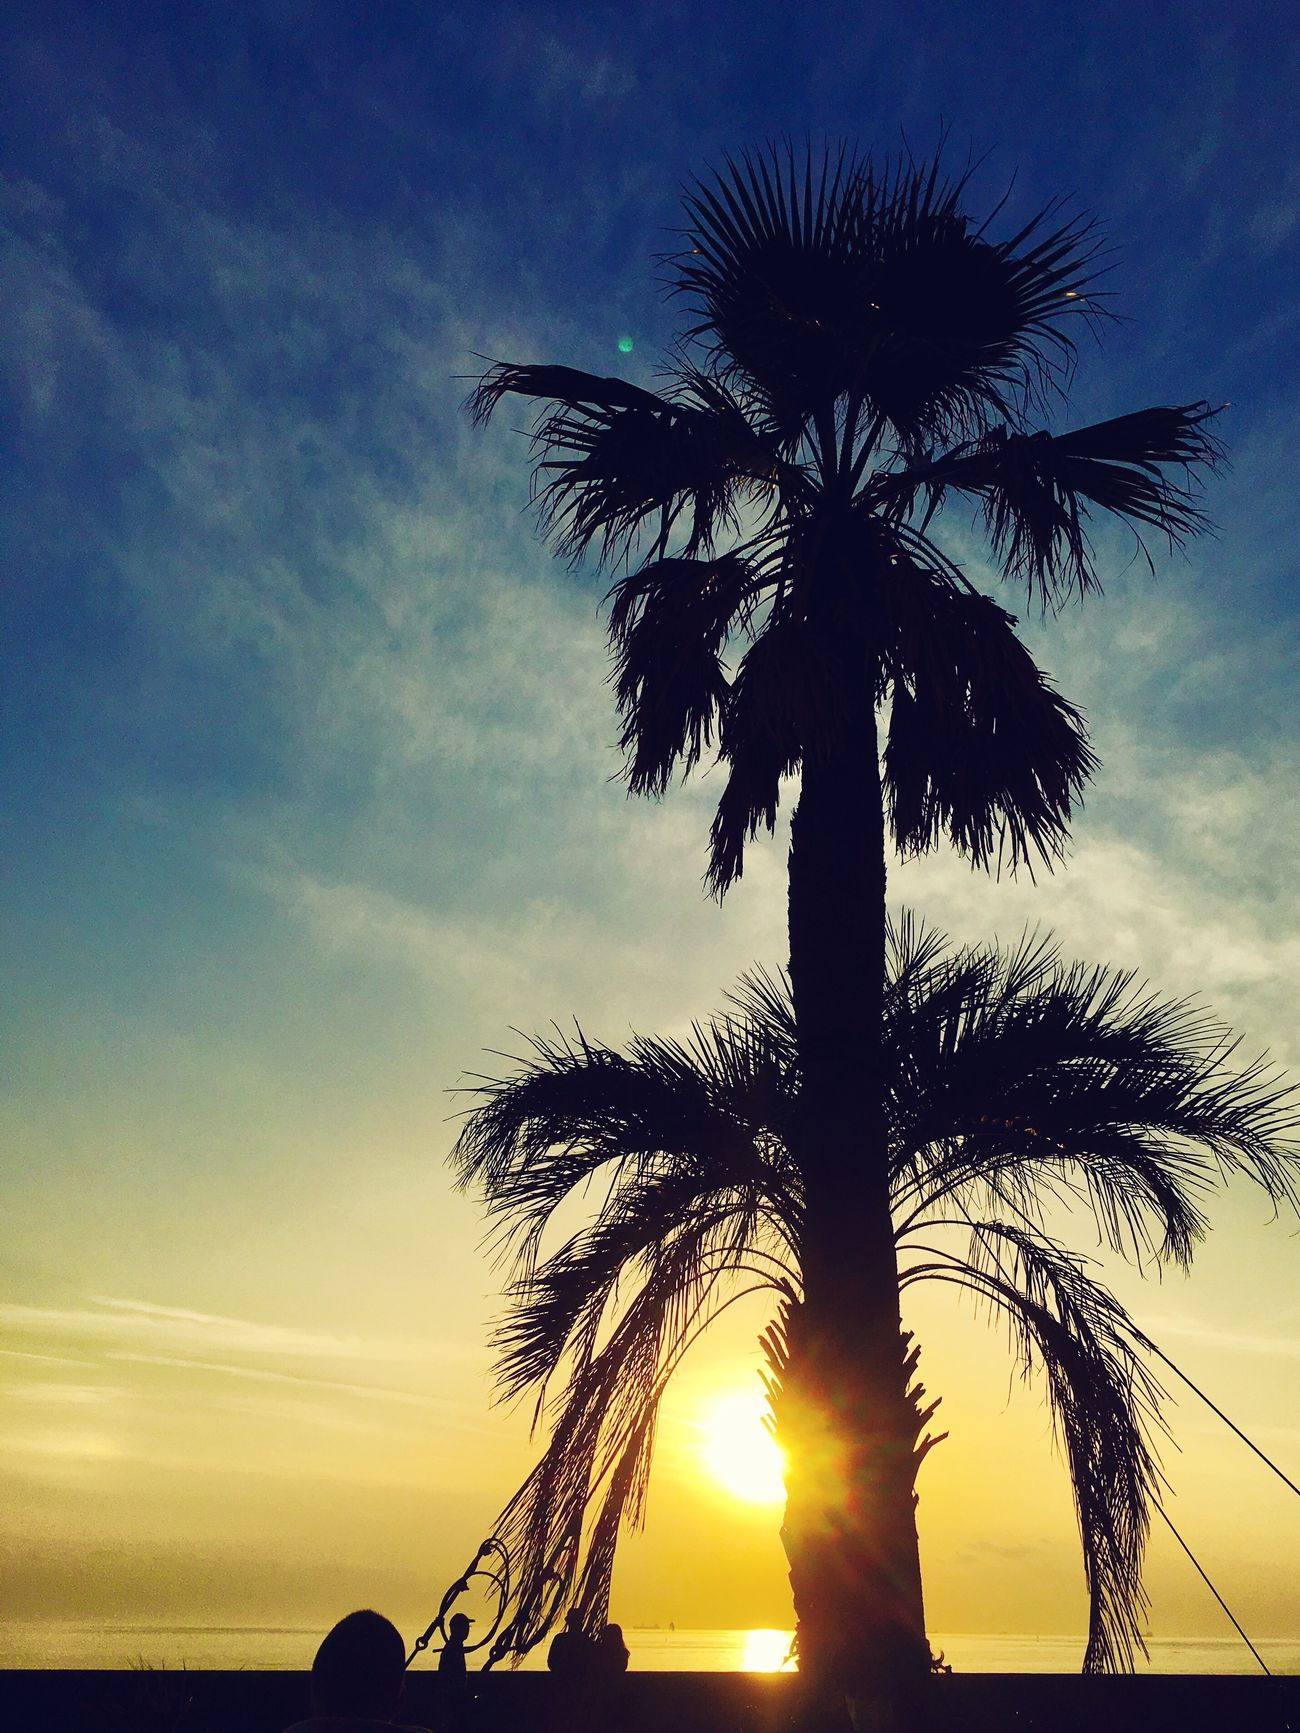 Palm Tree Tree Sky Scenics Sunset Silhouette Beauty In Nature Nature Beach Sea Outdoors Ocean View Chiba Tokyo Bay Japan